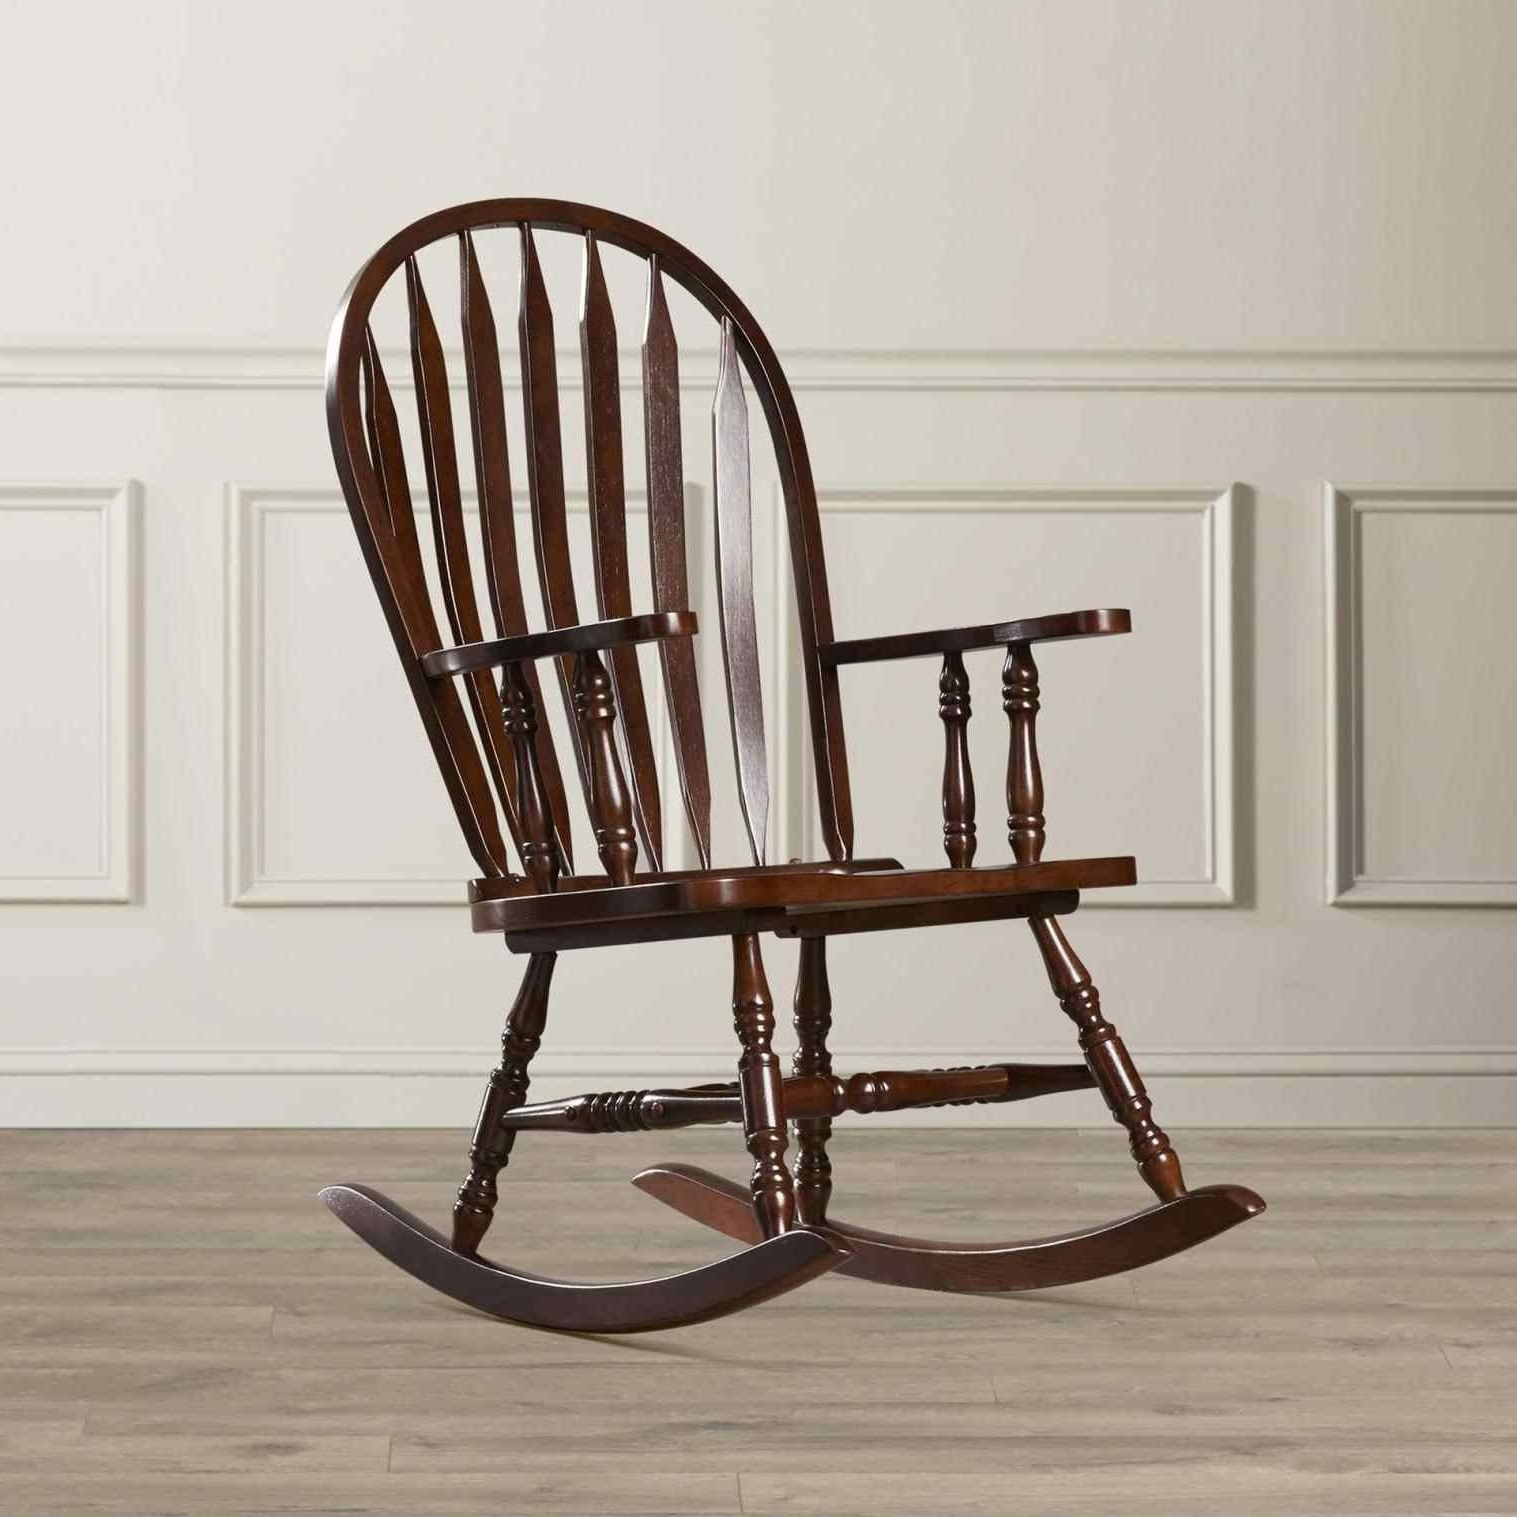 Newest Wayfair Rocking Chair Best Of Rocking Chair Wayfair Rocking Chair Intended For Rocking Chairs At Wayfair (View 5 of 15)